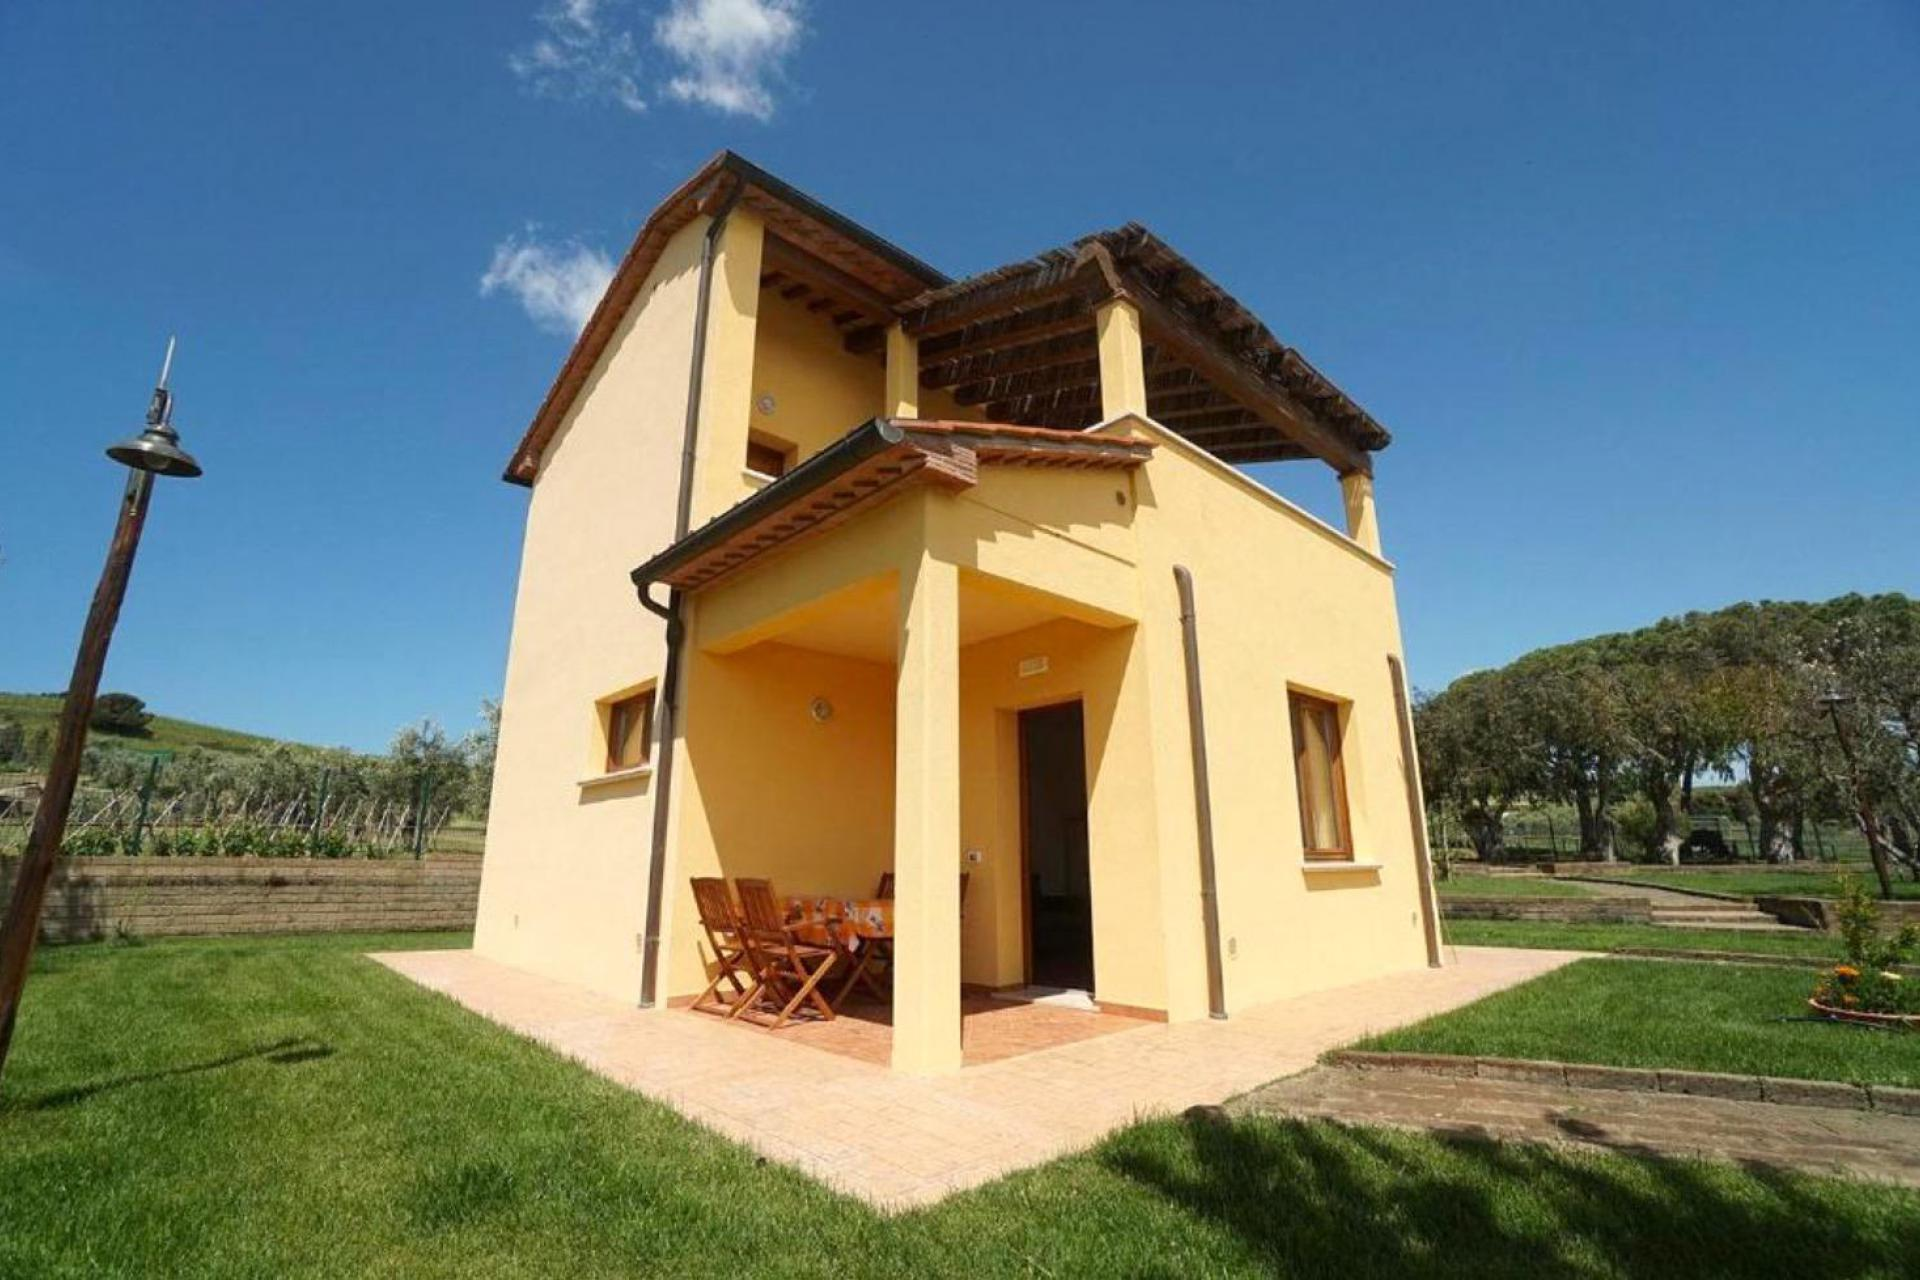 Agriturismo Tuscany Welcoming agriturismo in southern Tuscany near sea